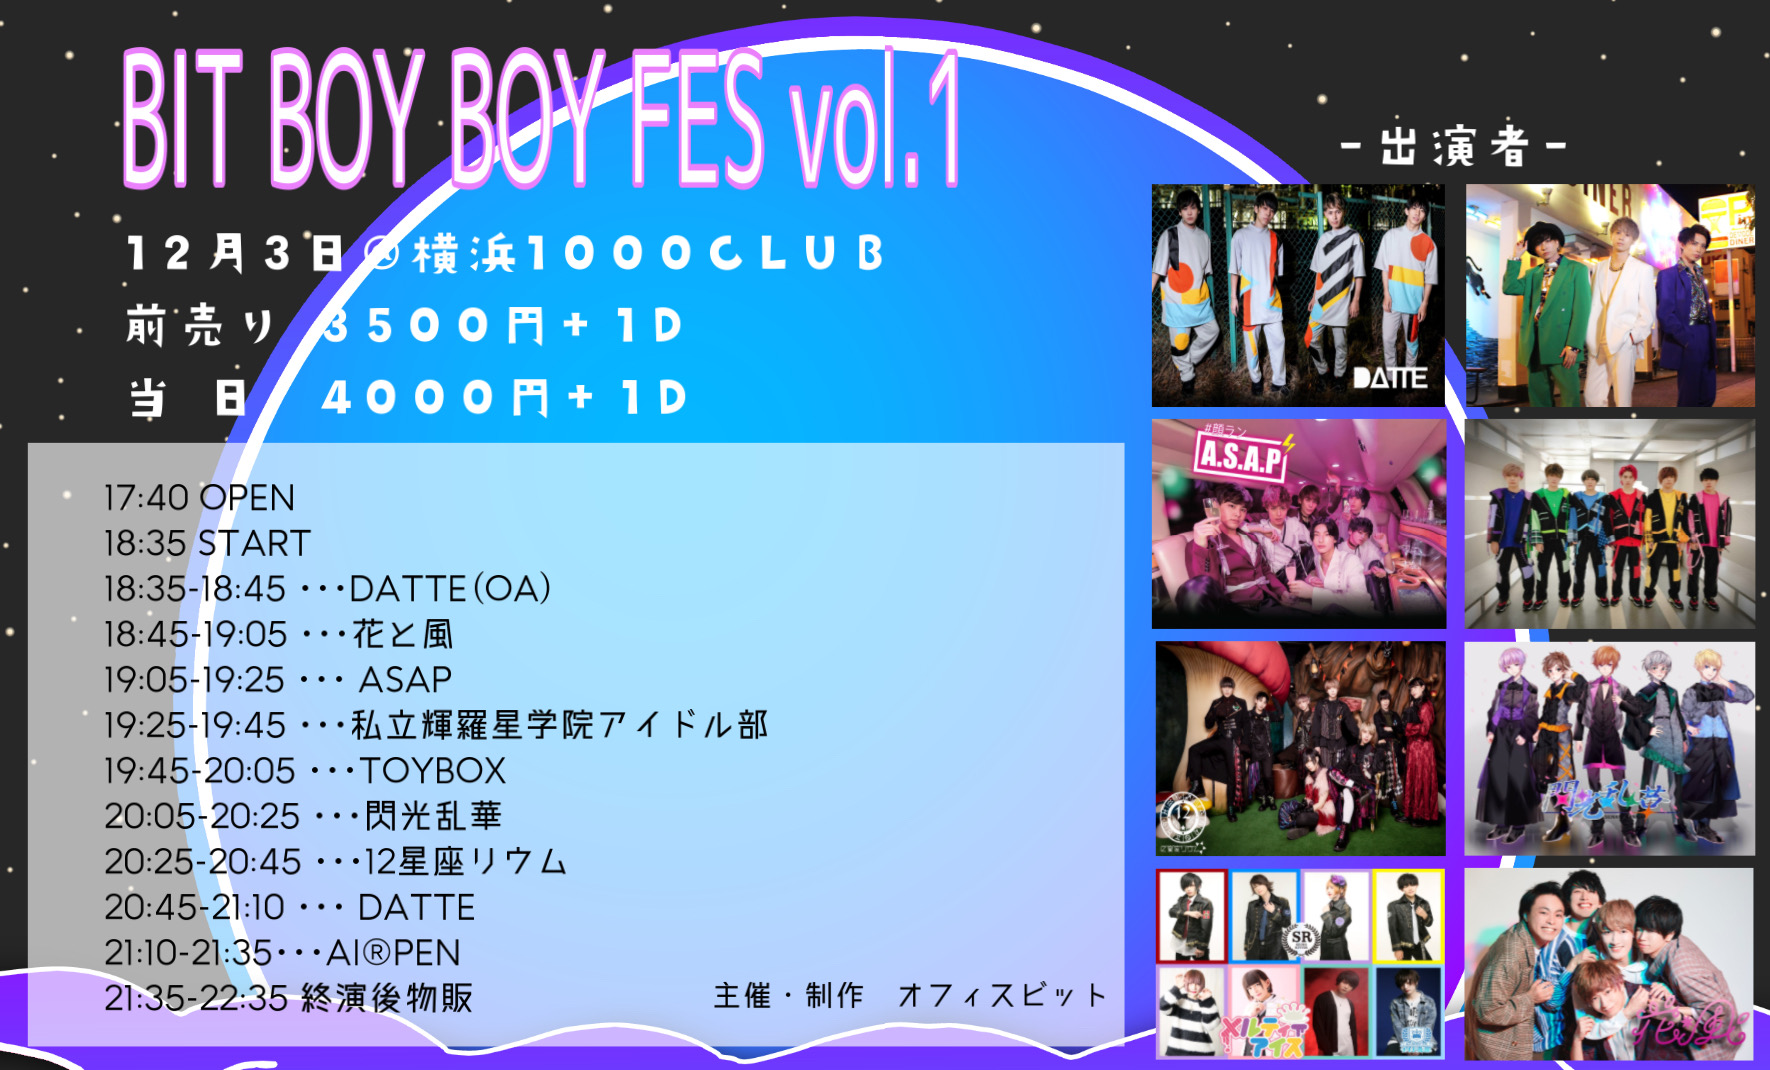 BIT BOY BOY FES vol.1